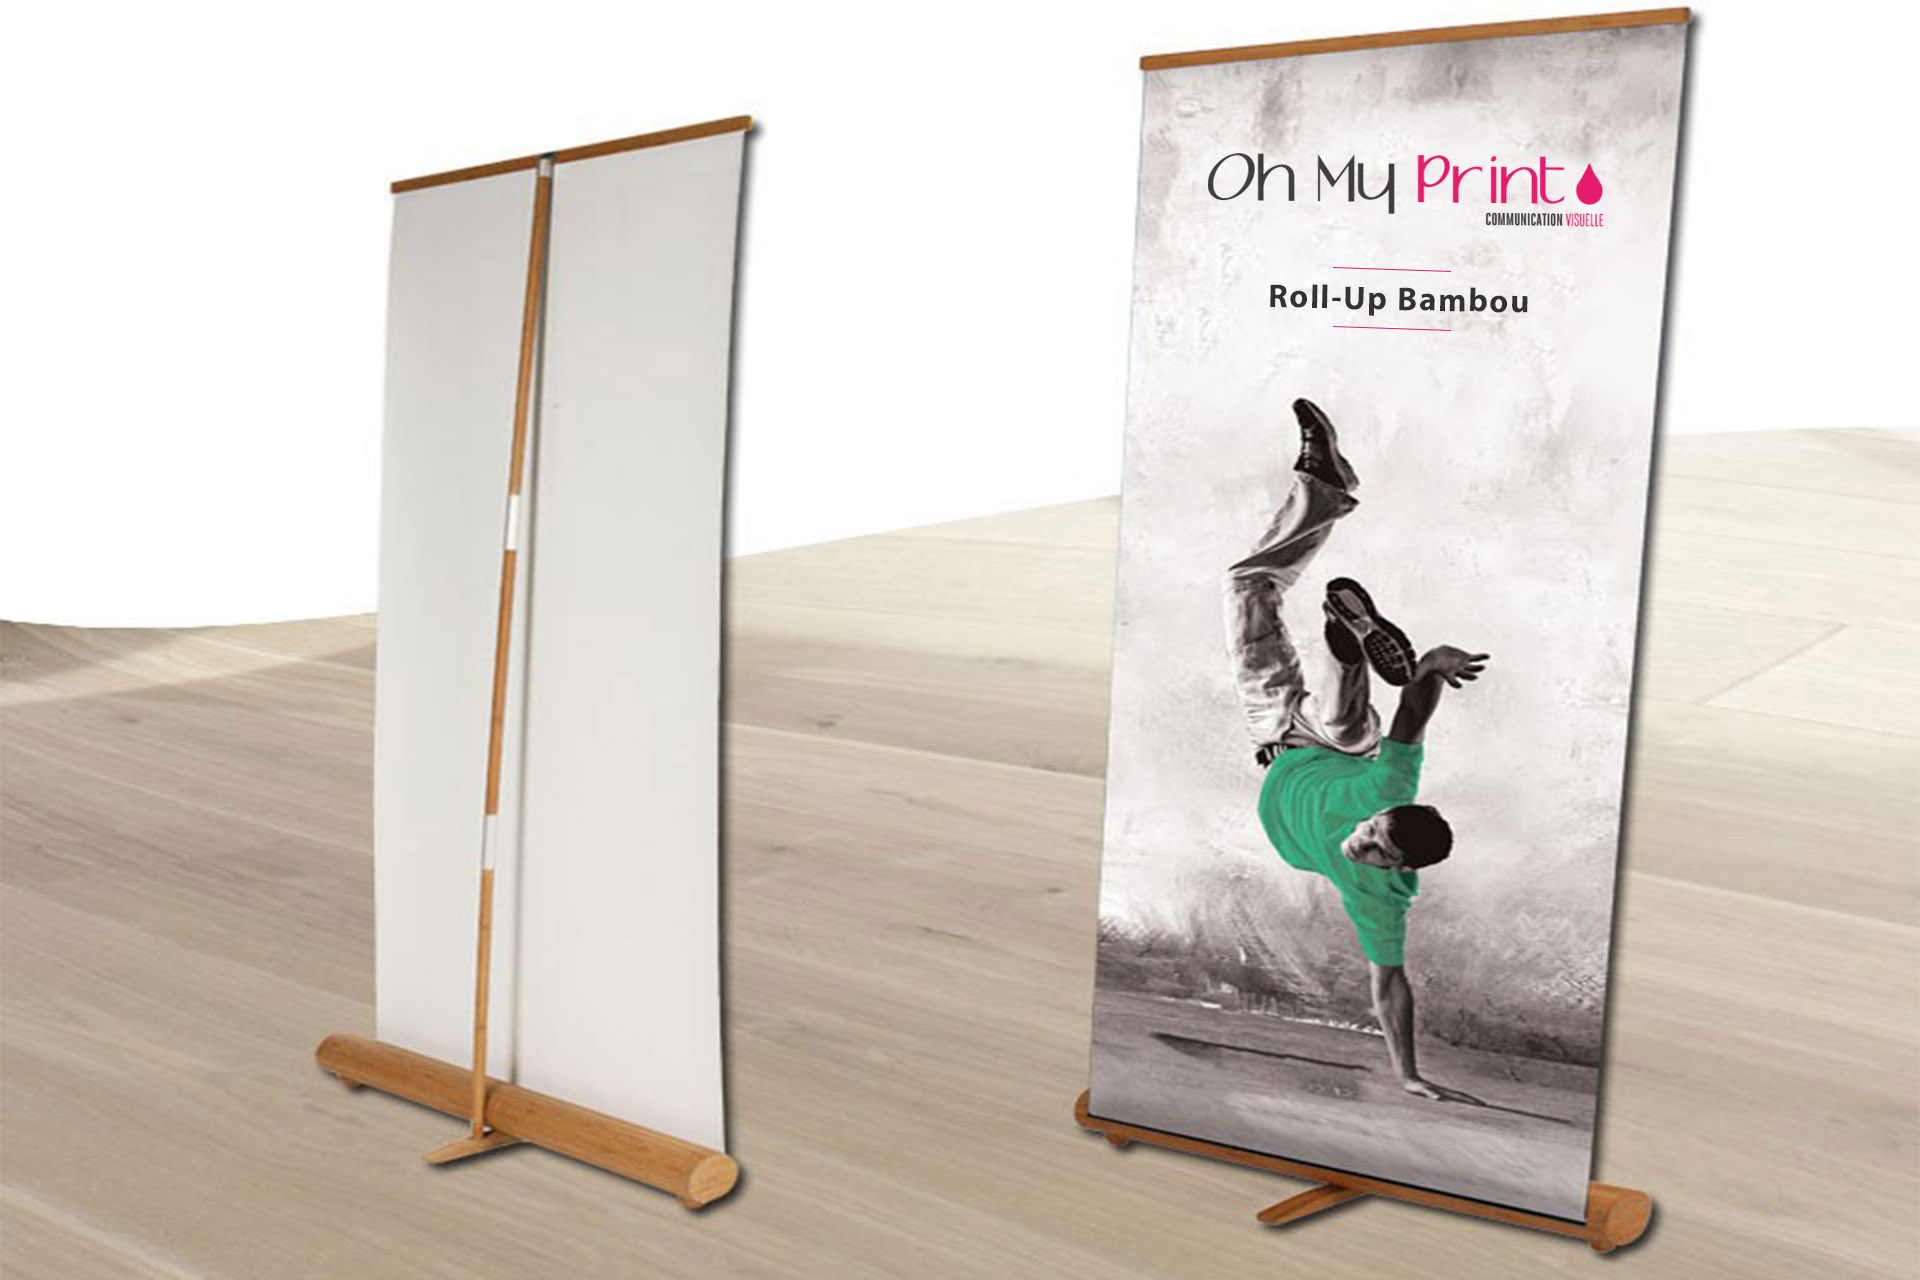 Stand-rollup-bambou-ohmyprint